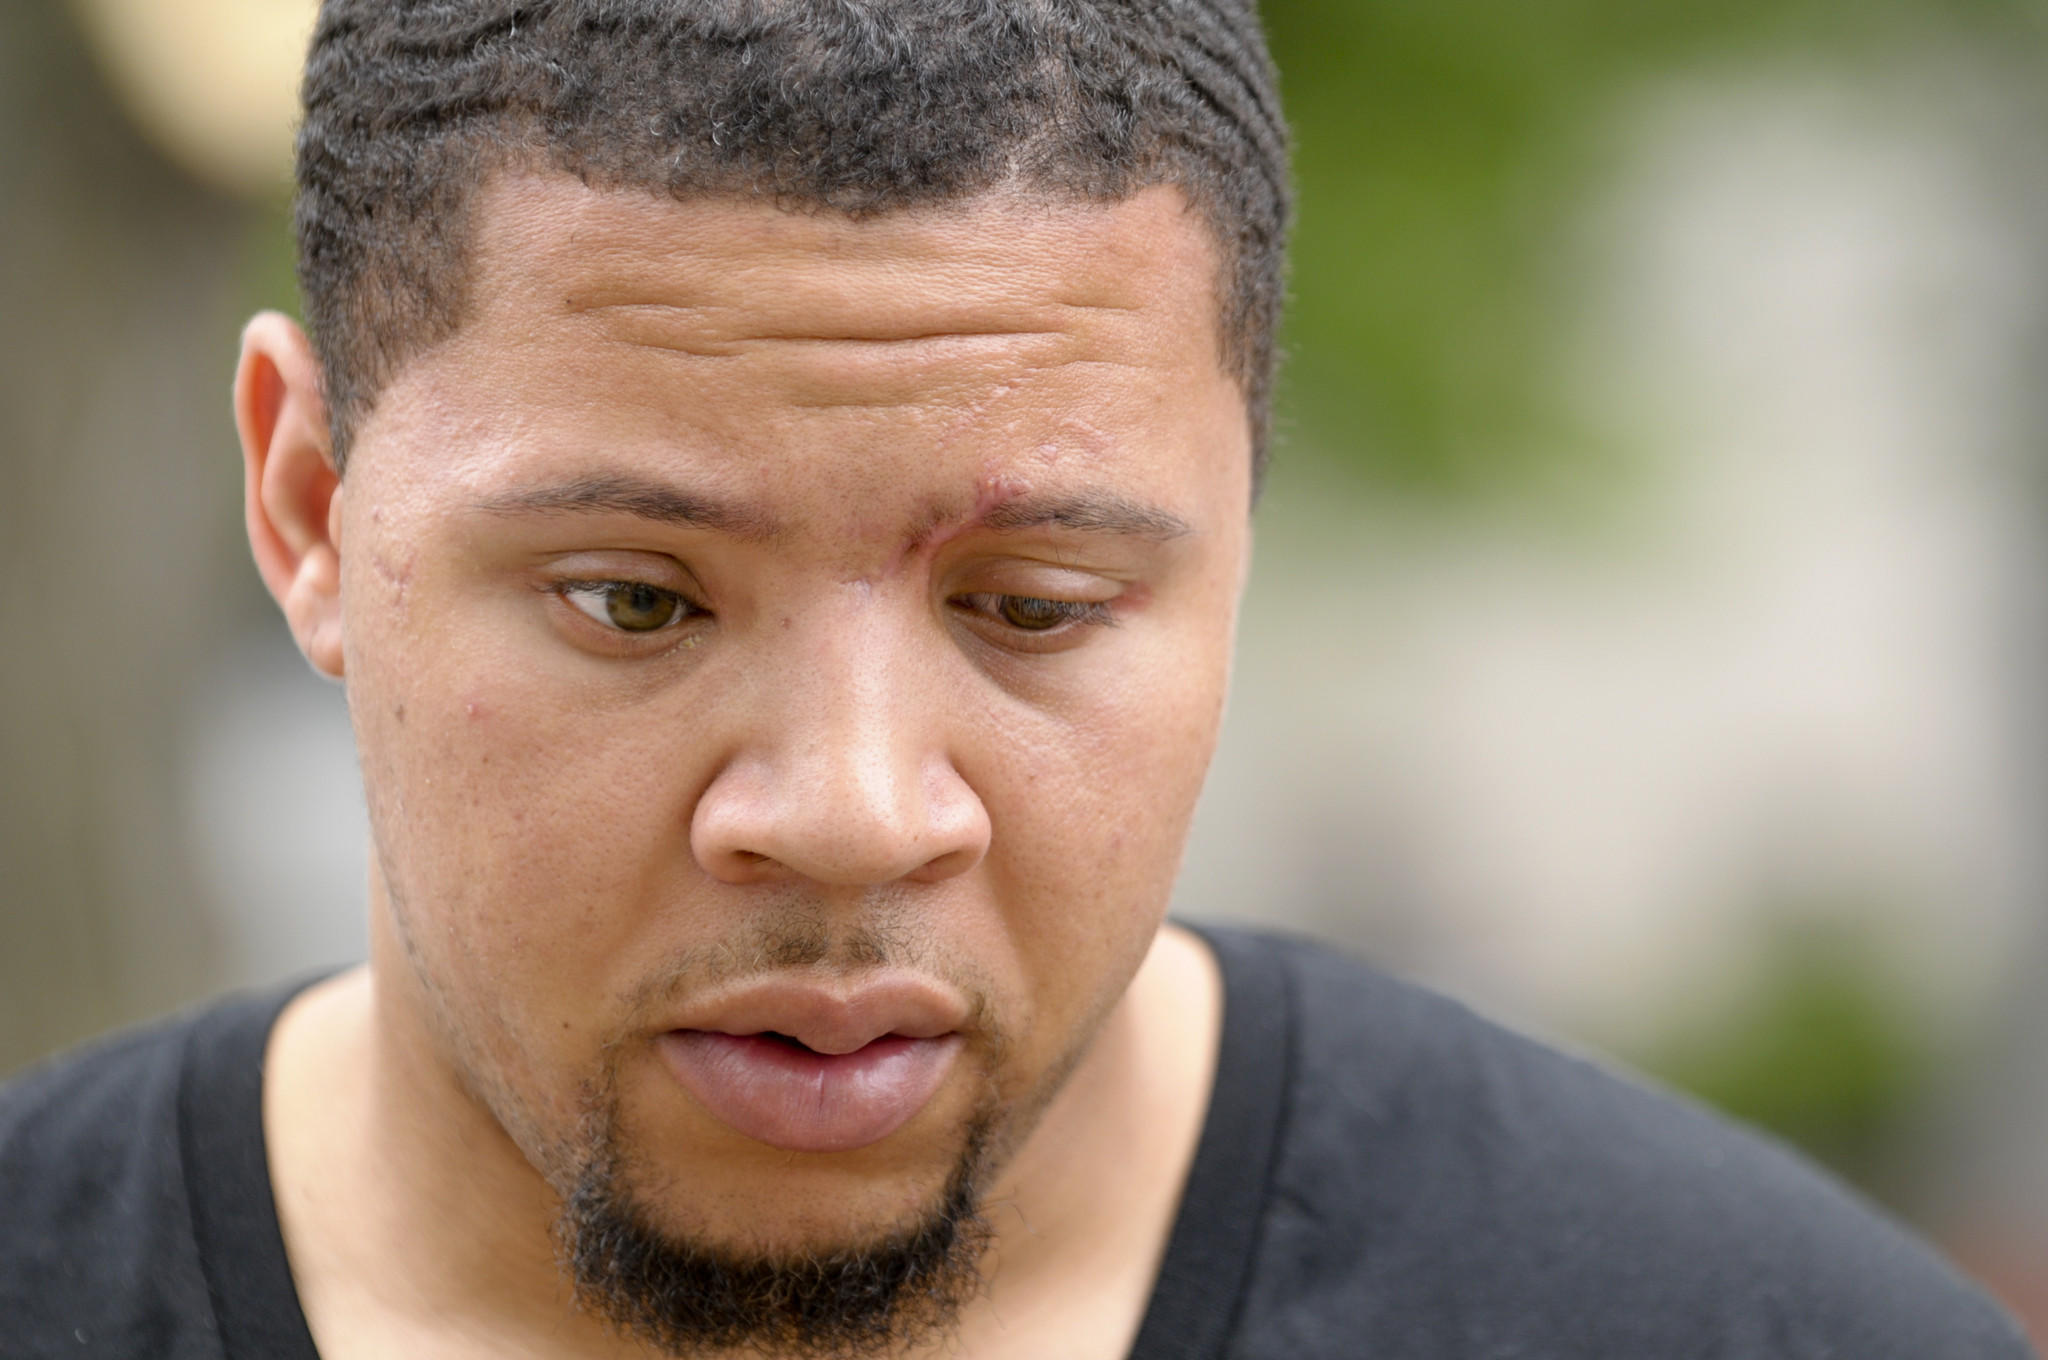 Alexander Bradley, a man who was allegedly shot in the face by Aaron Hernandez in Florida, appearing at Hartford Superior Court for a hearing on a domestic charge in July.